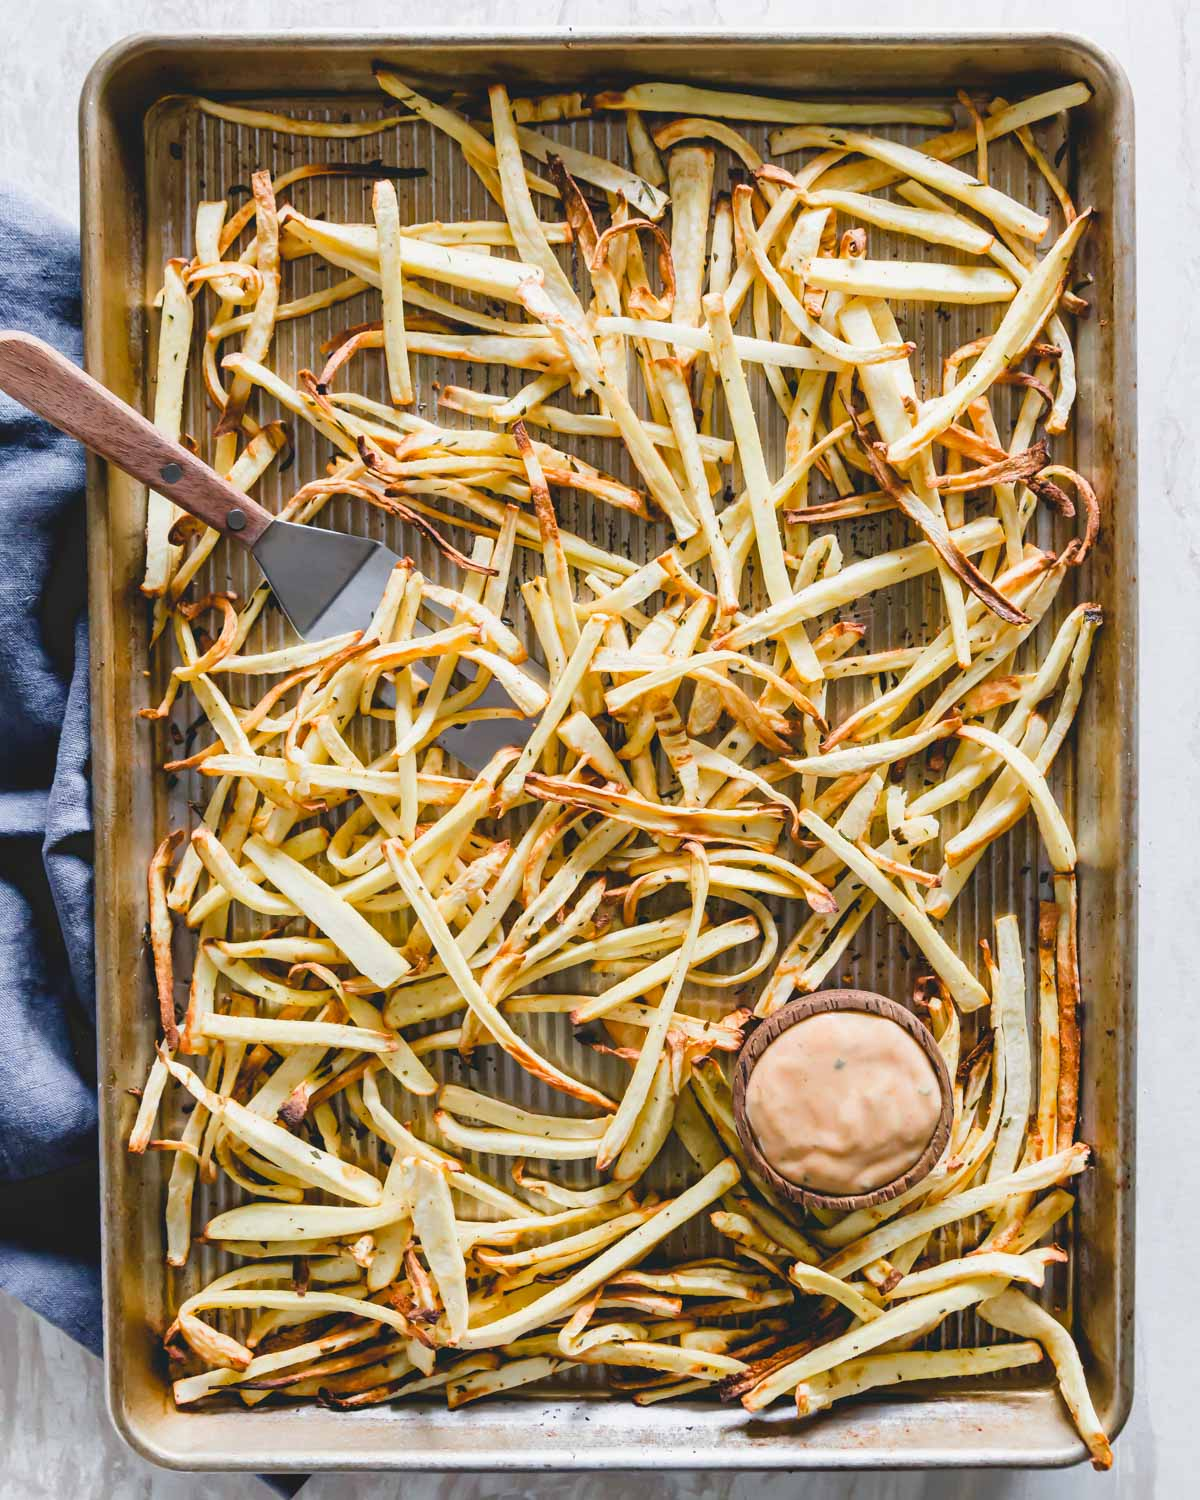 Crispy baked parsnip fries on a baking sheet with a fry sauce for dipping.